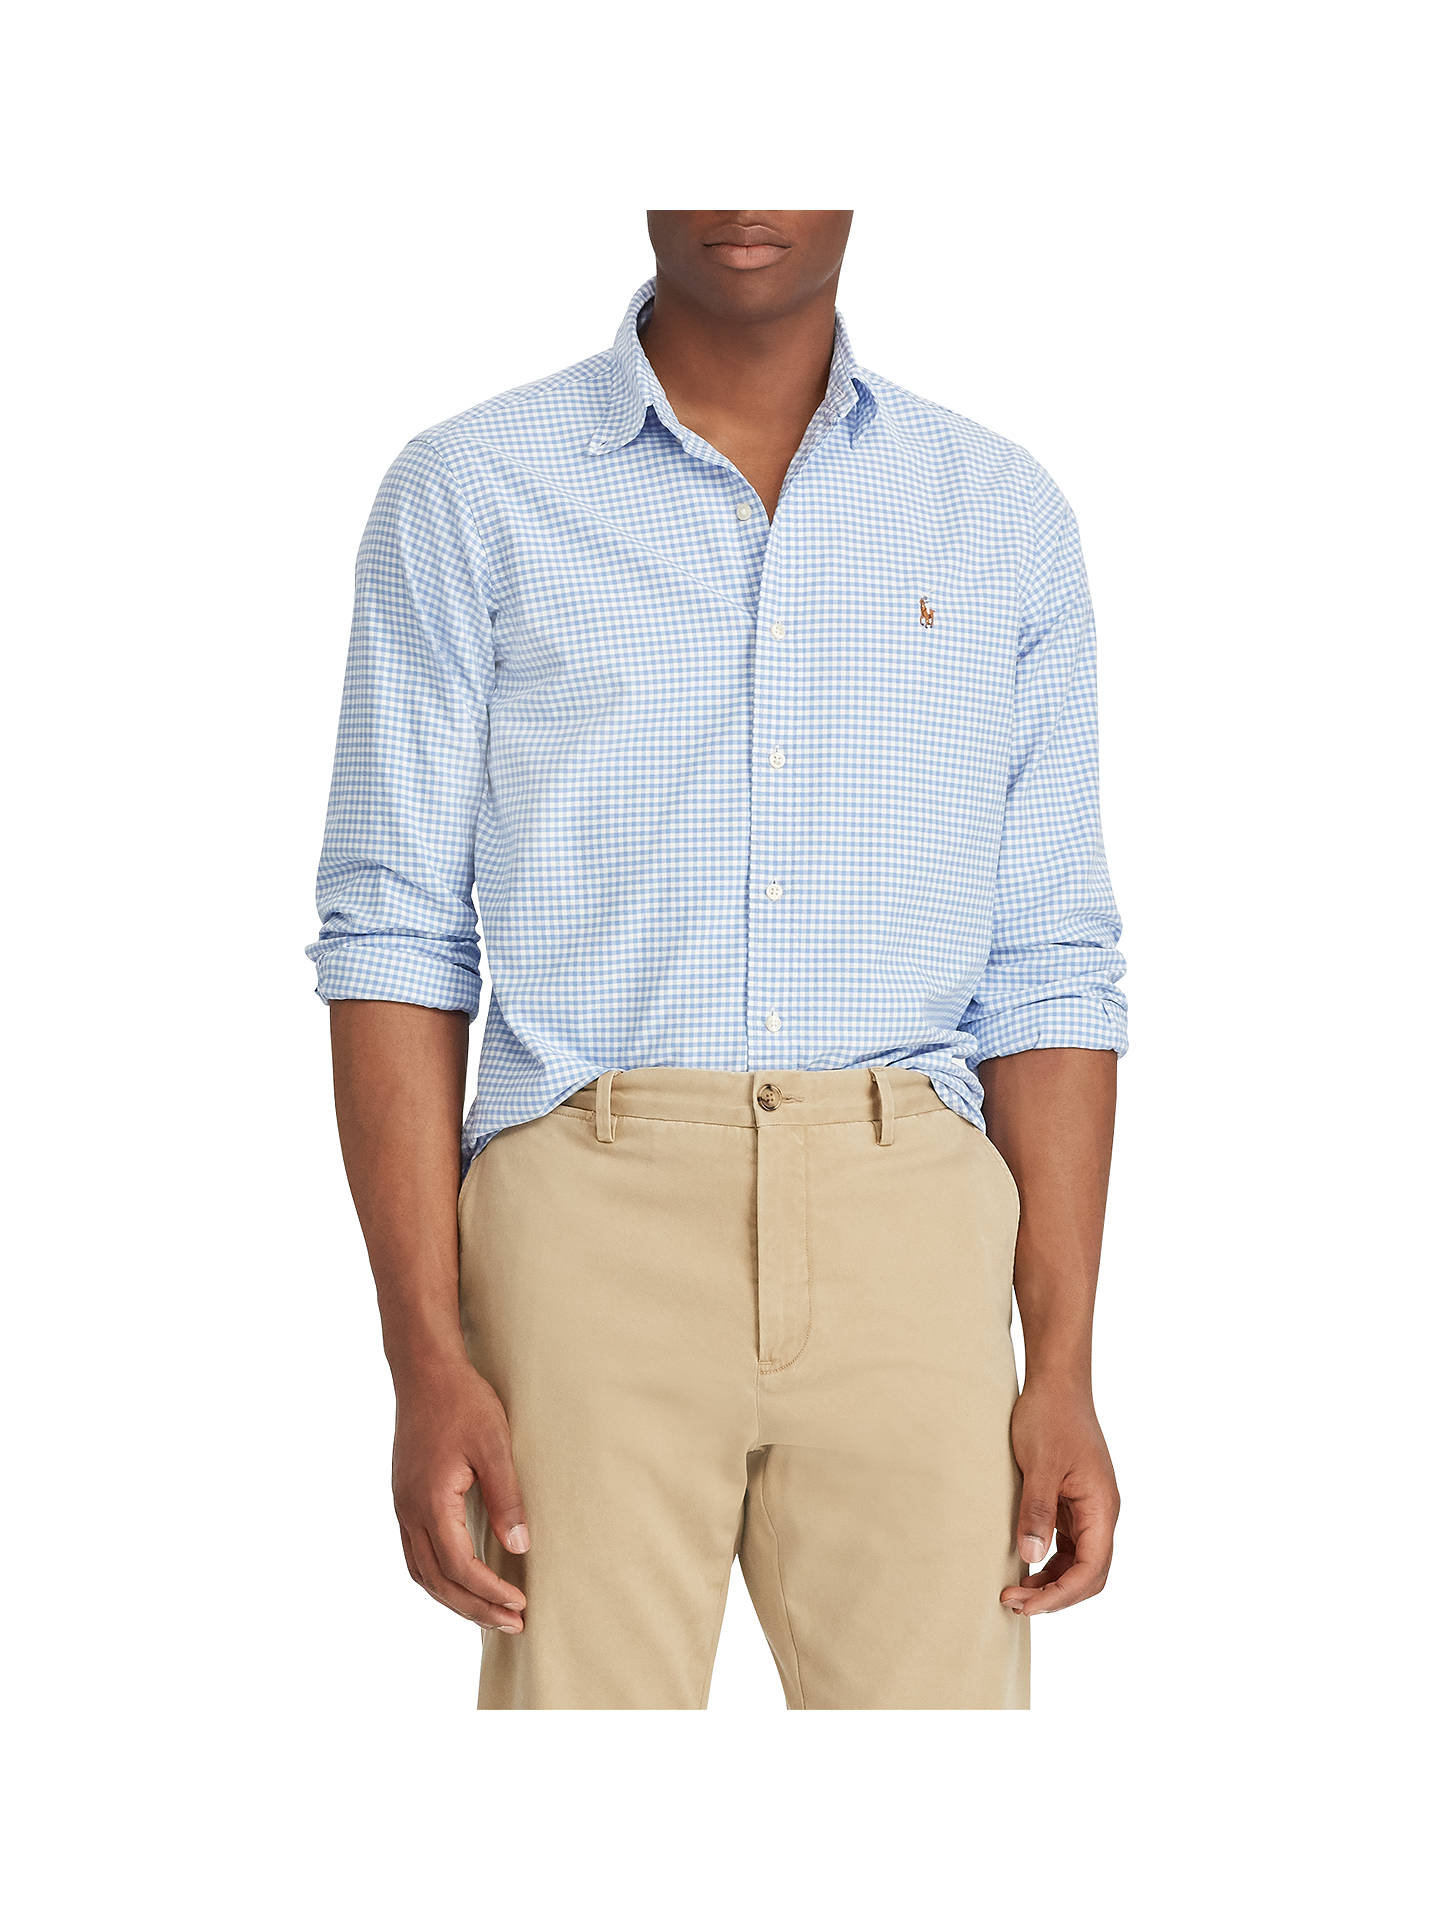 BuyPolo Ralph Lauren Long Sleeve Check Shirt, Steel Blue/White, S Online at johnlewis.com